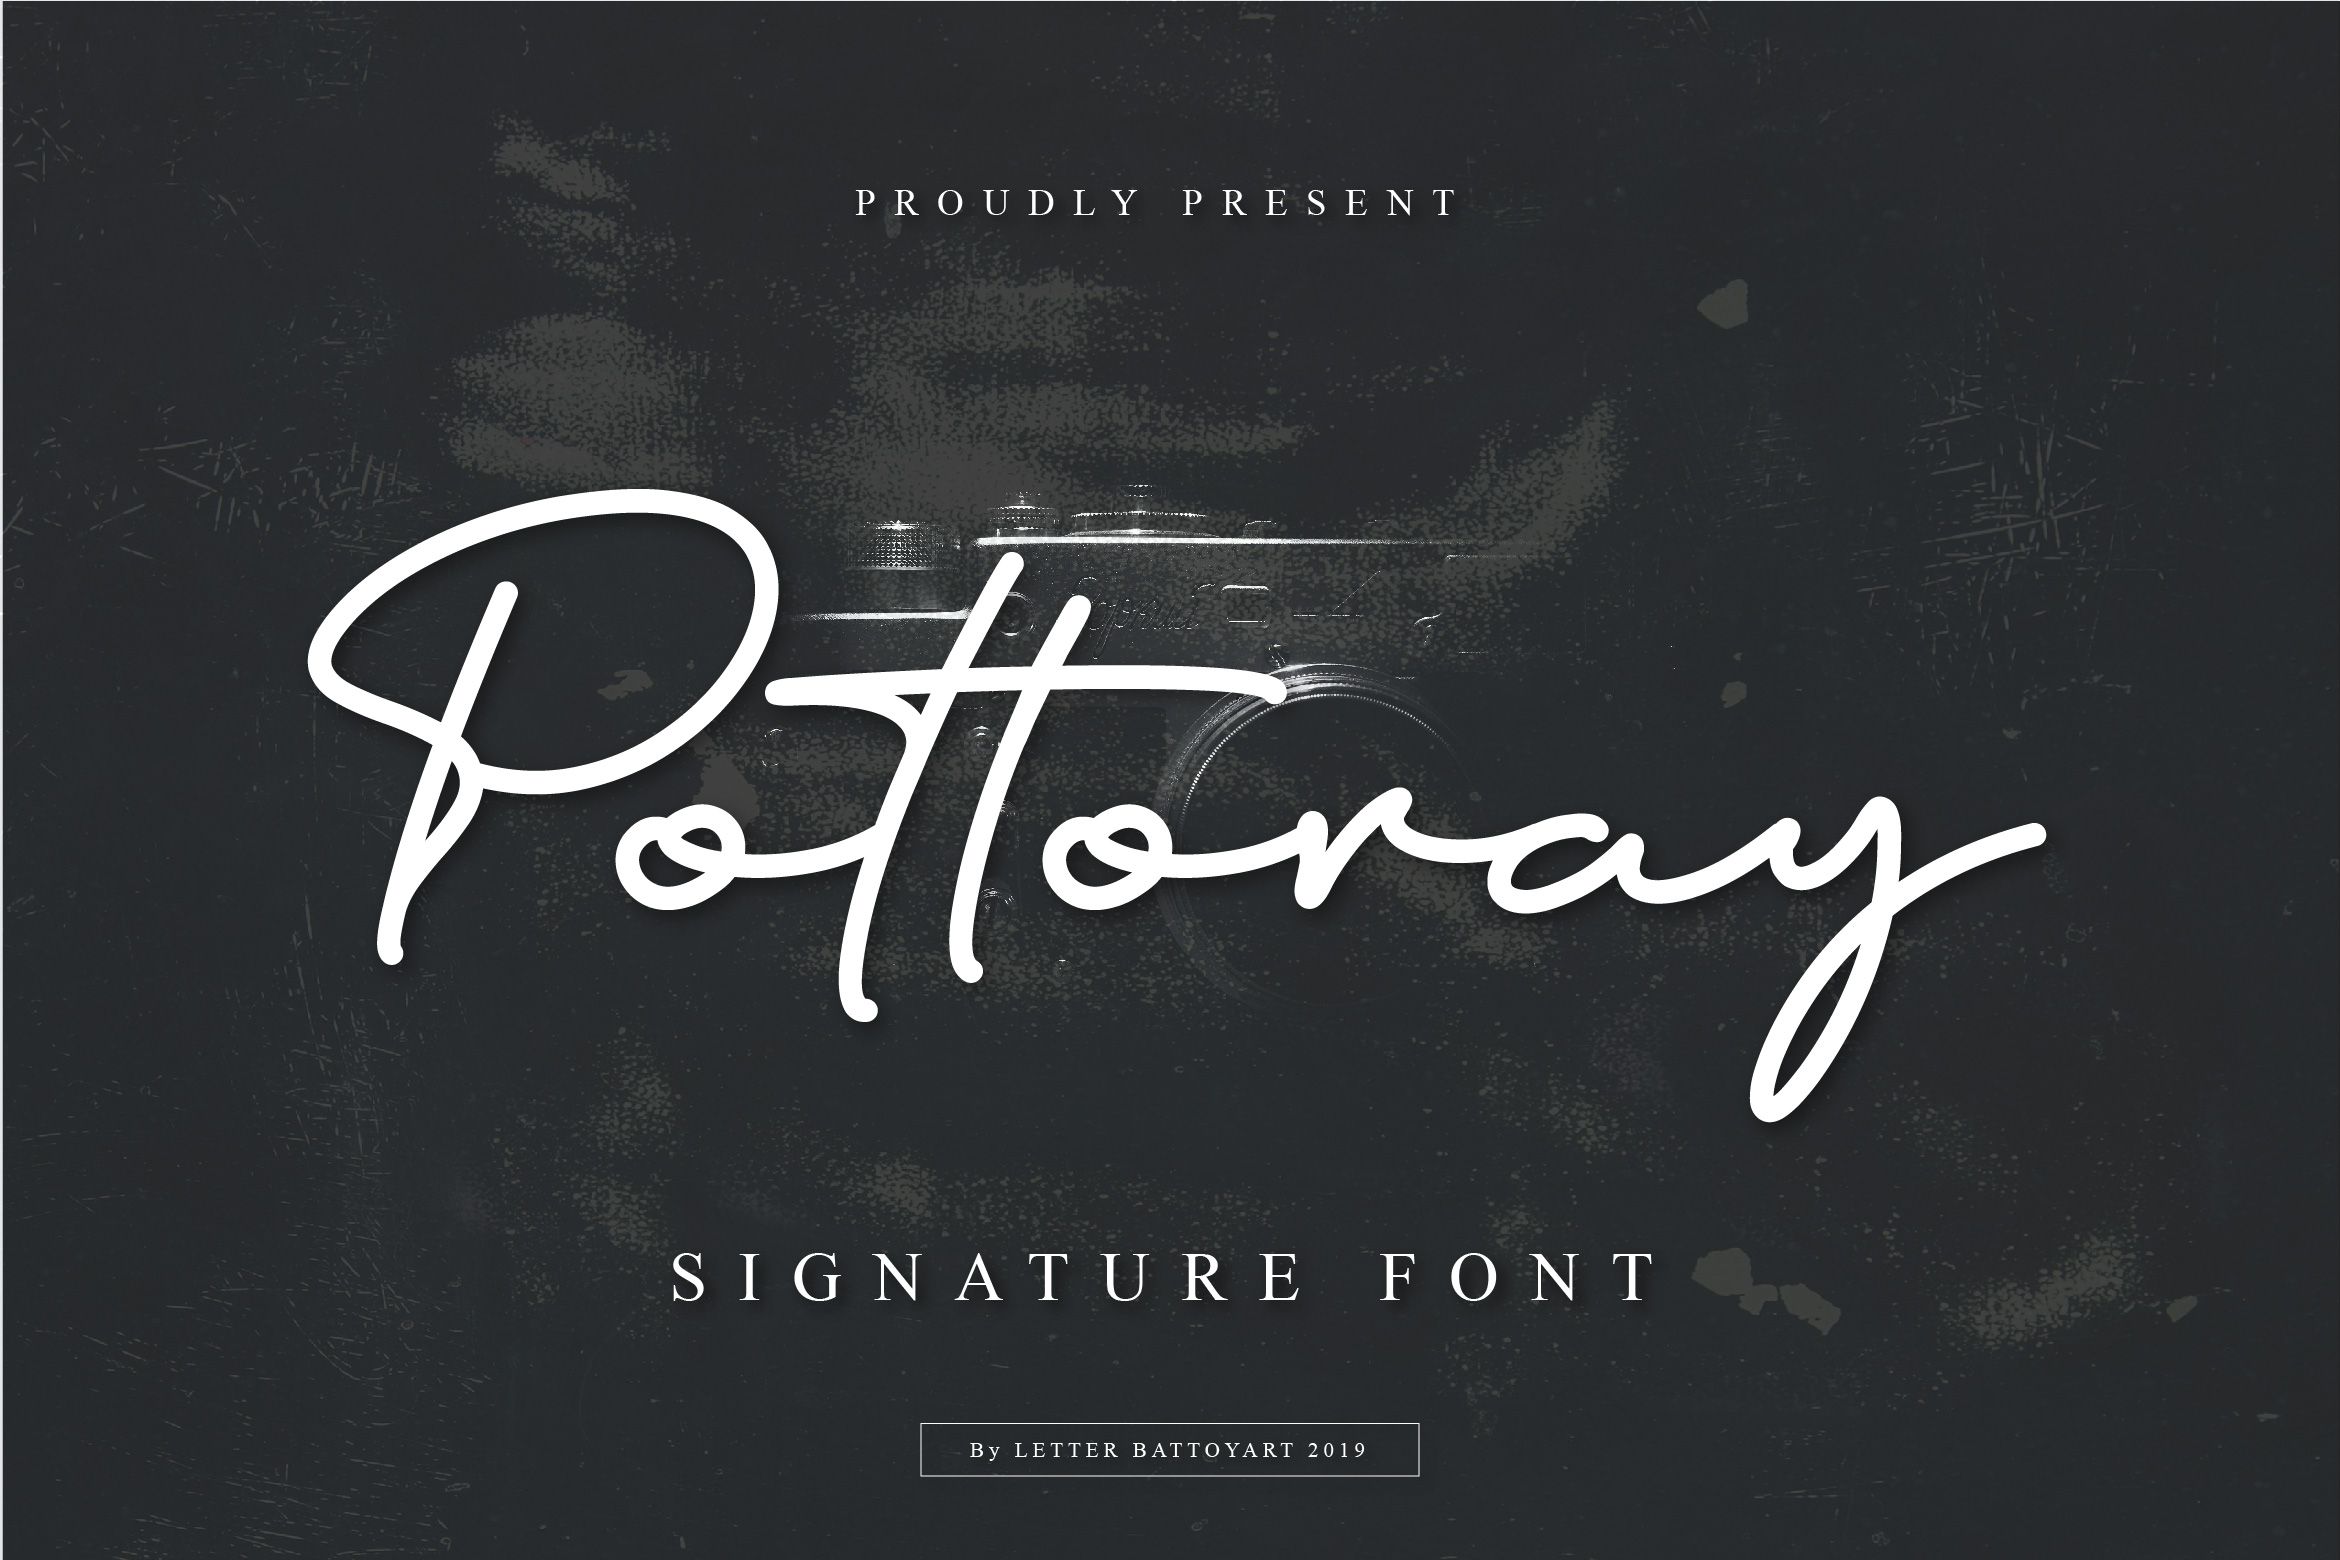 Pottoray - Signature Font example image 1